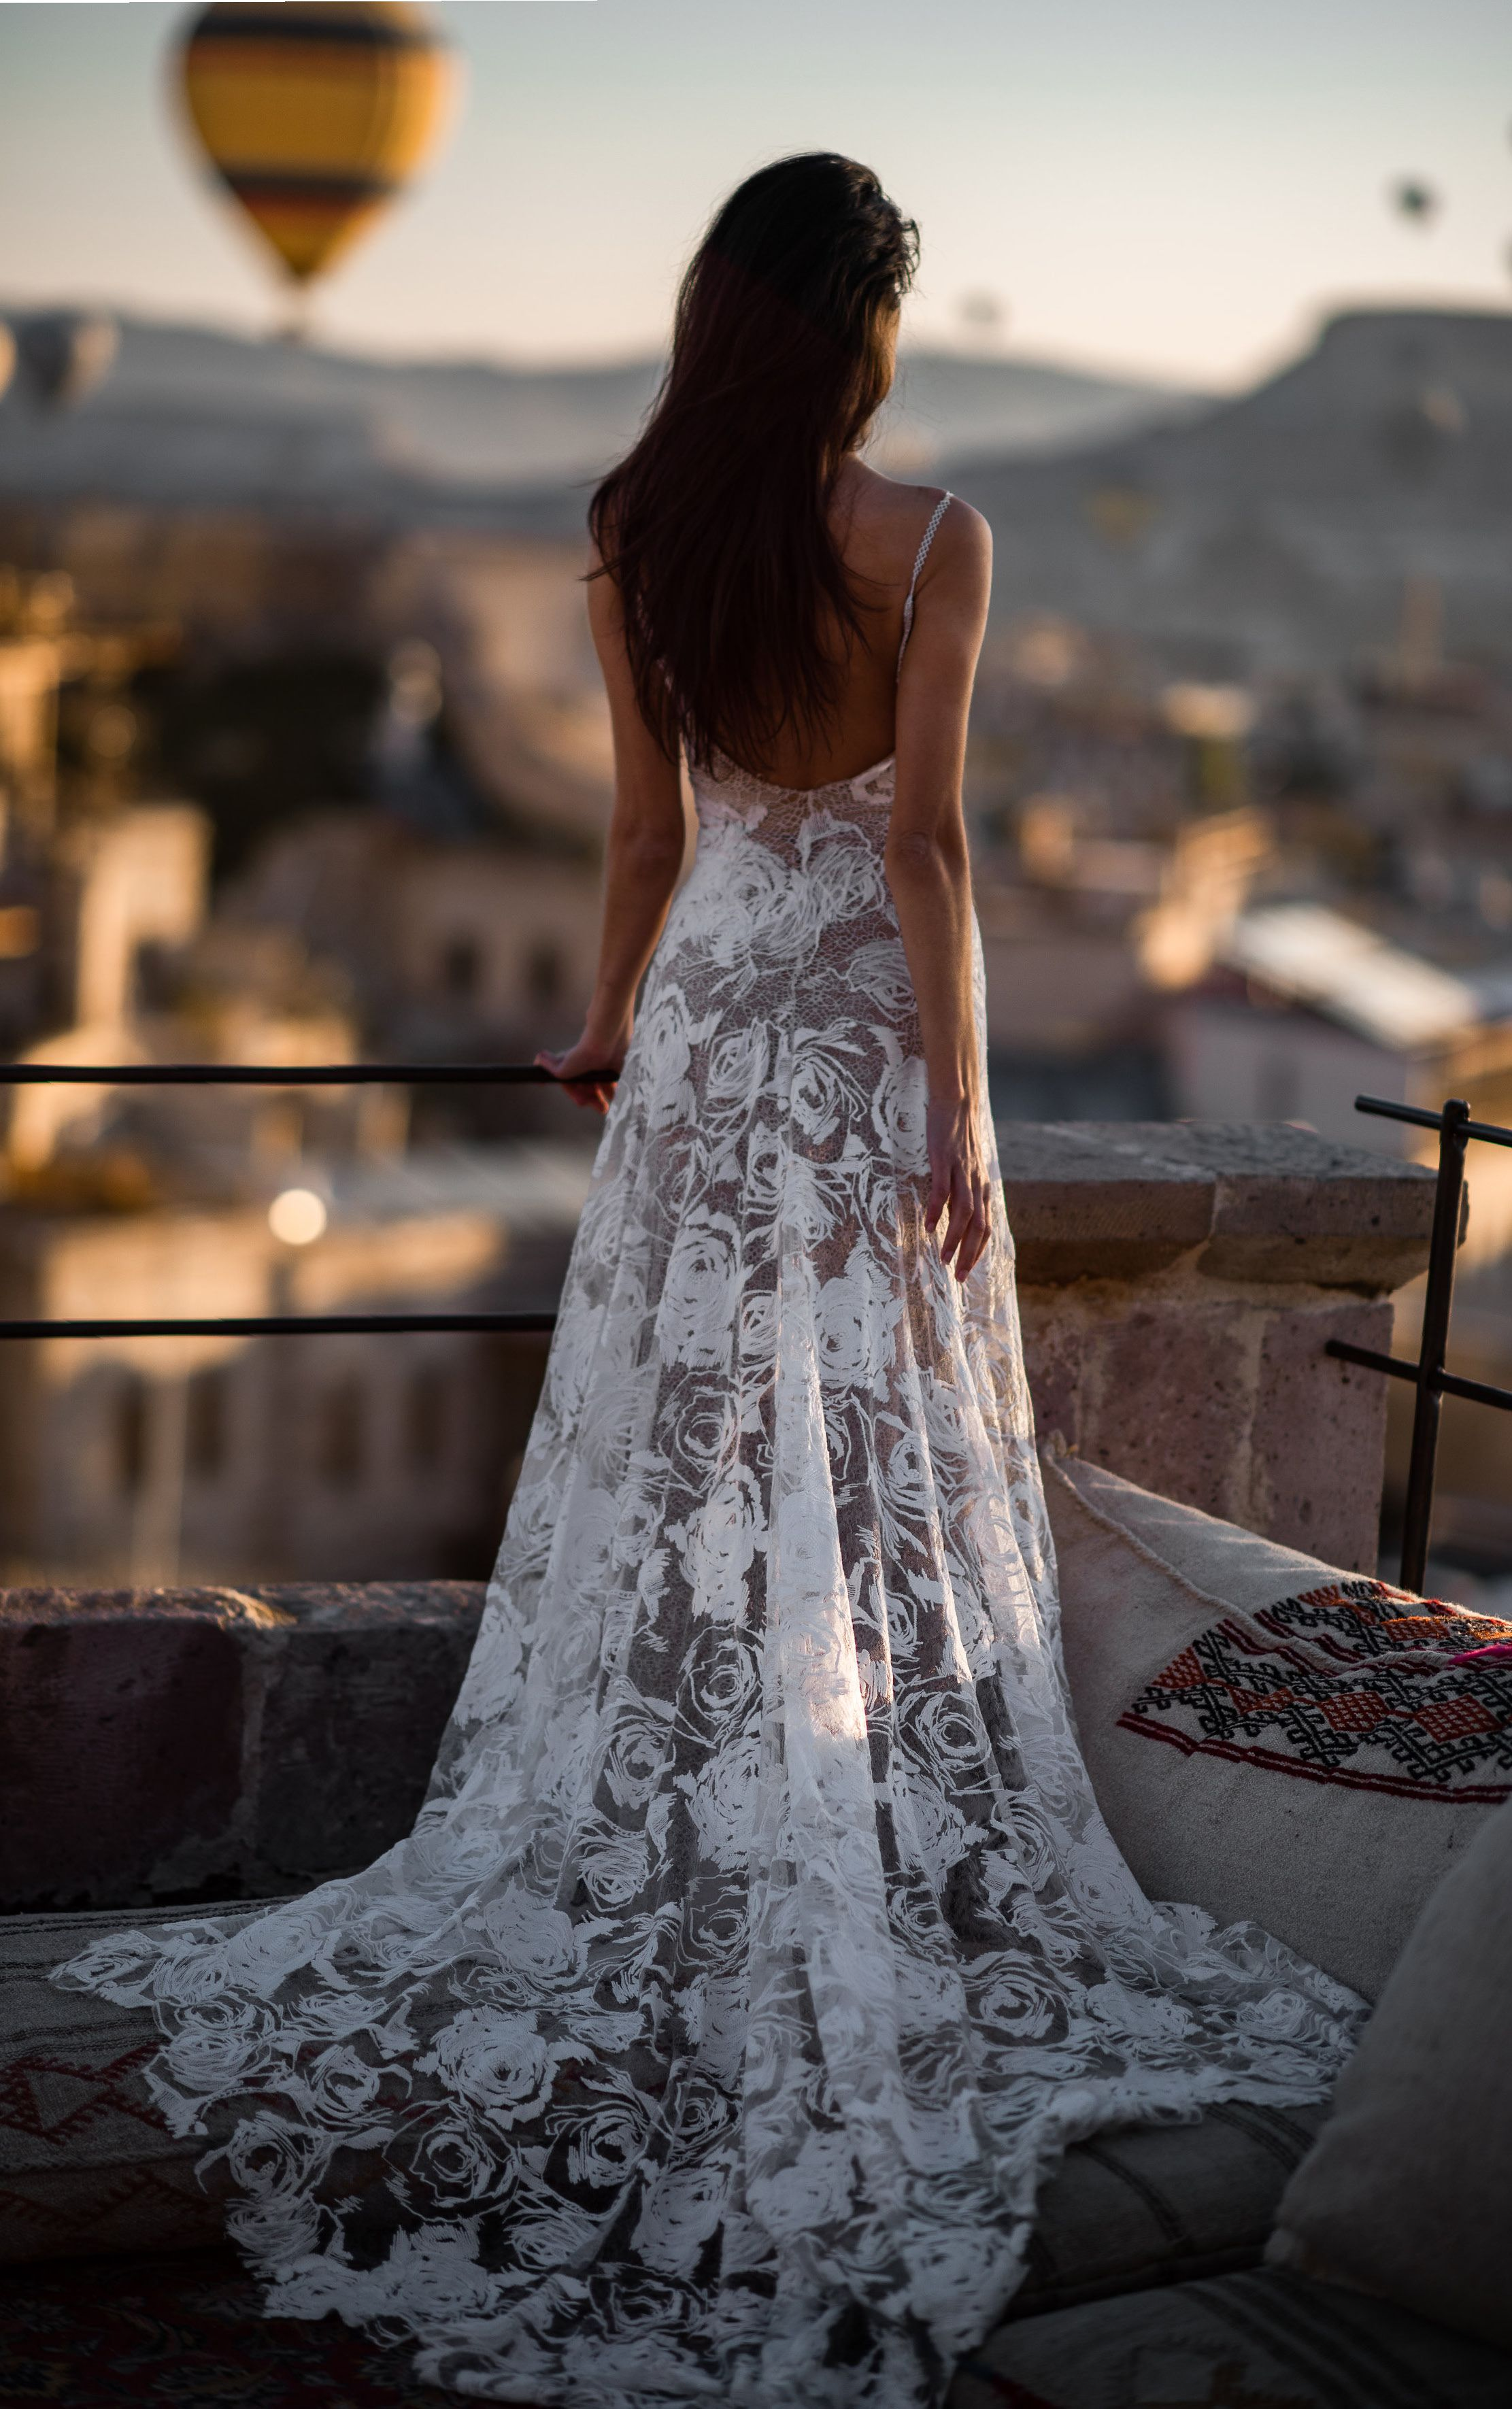 Rosa in dresses pinterest cappadocia gowns and wedding